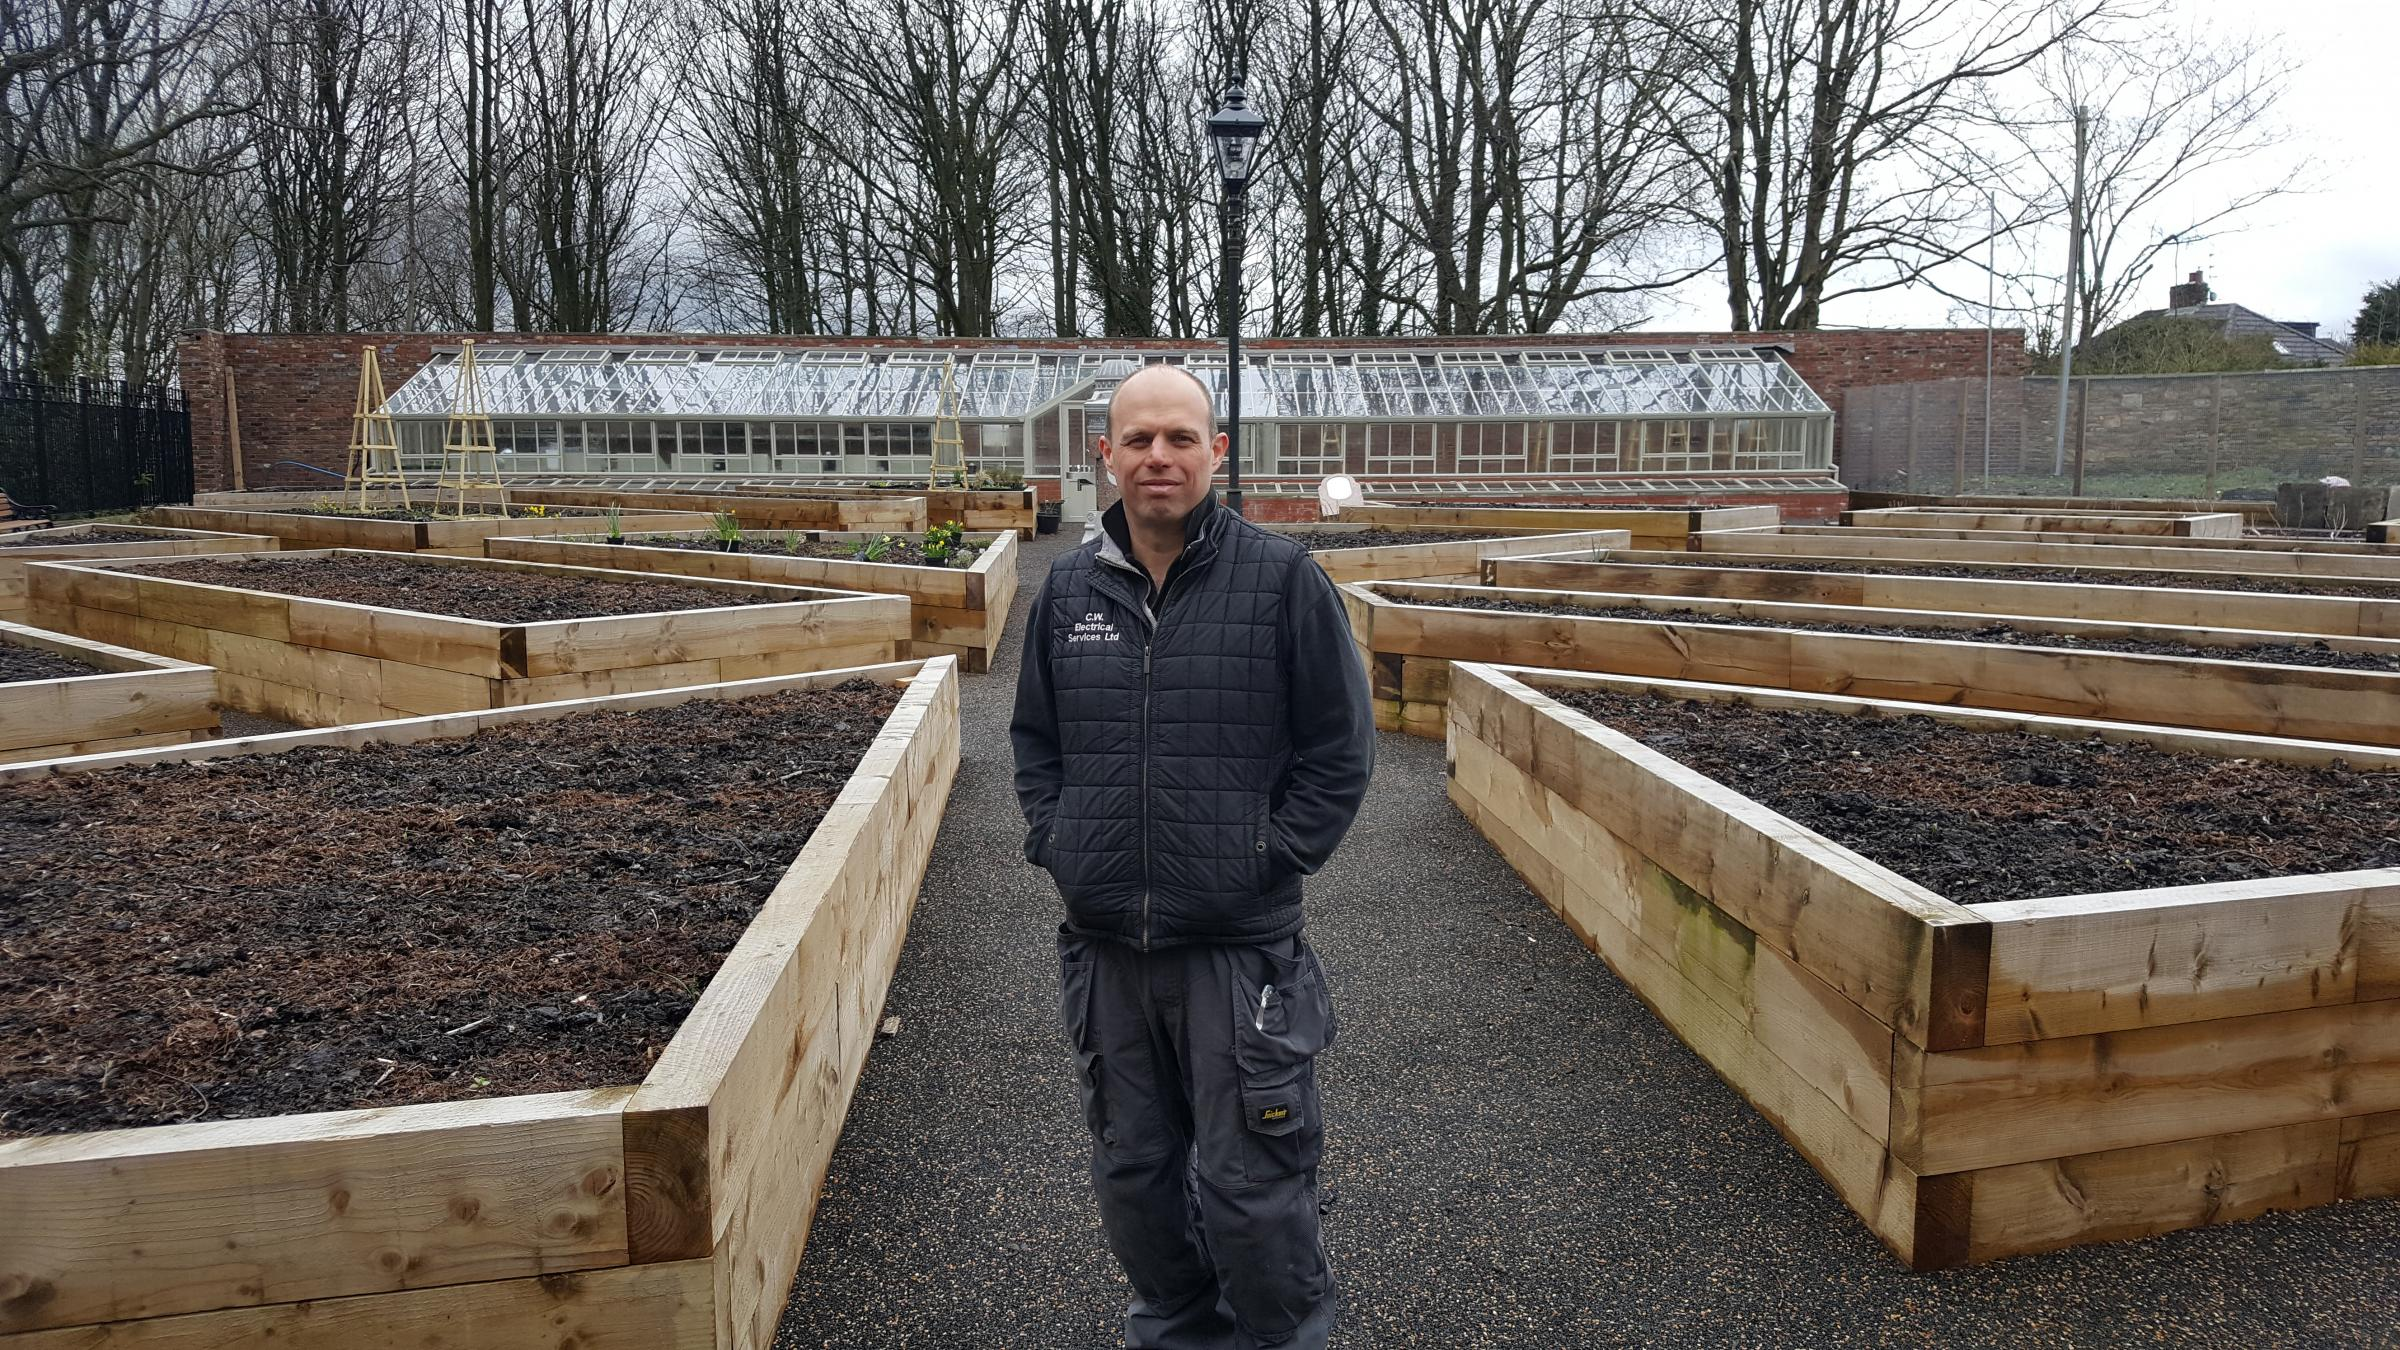 Cllr Paul Cox in the walled garden at Rhyddings Park